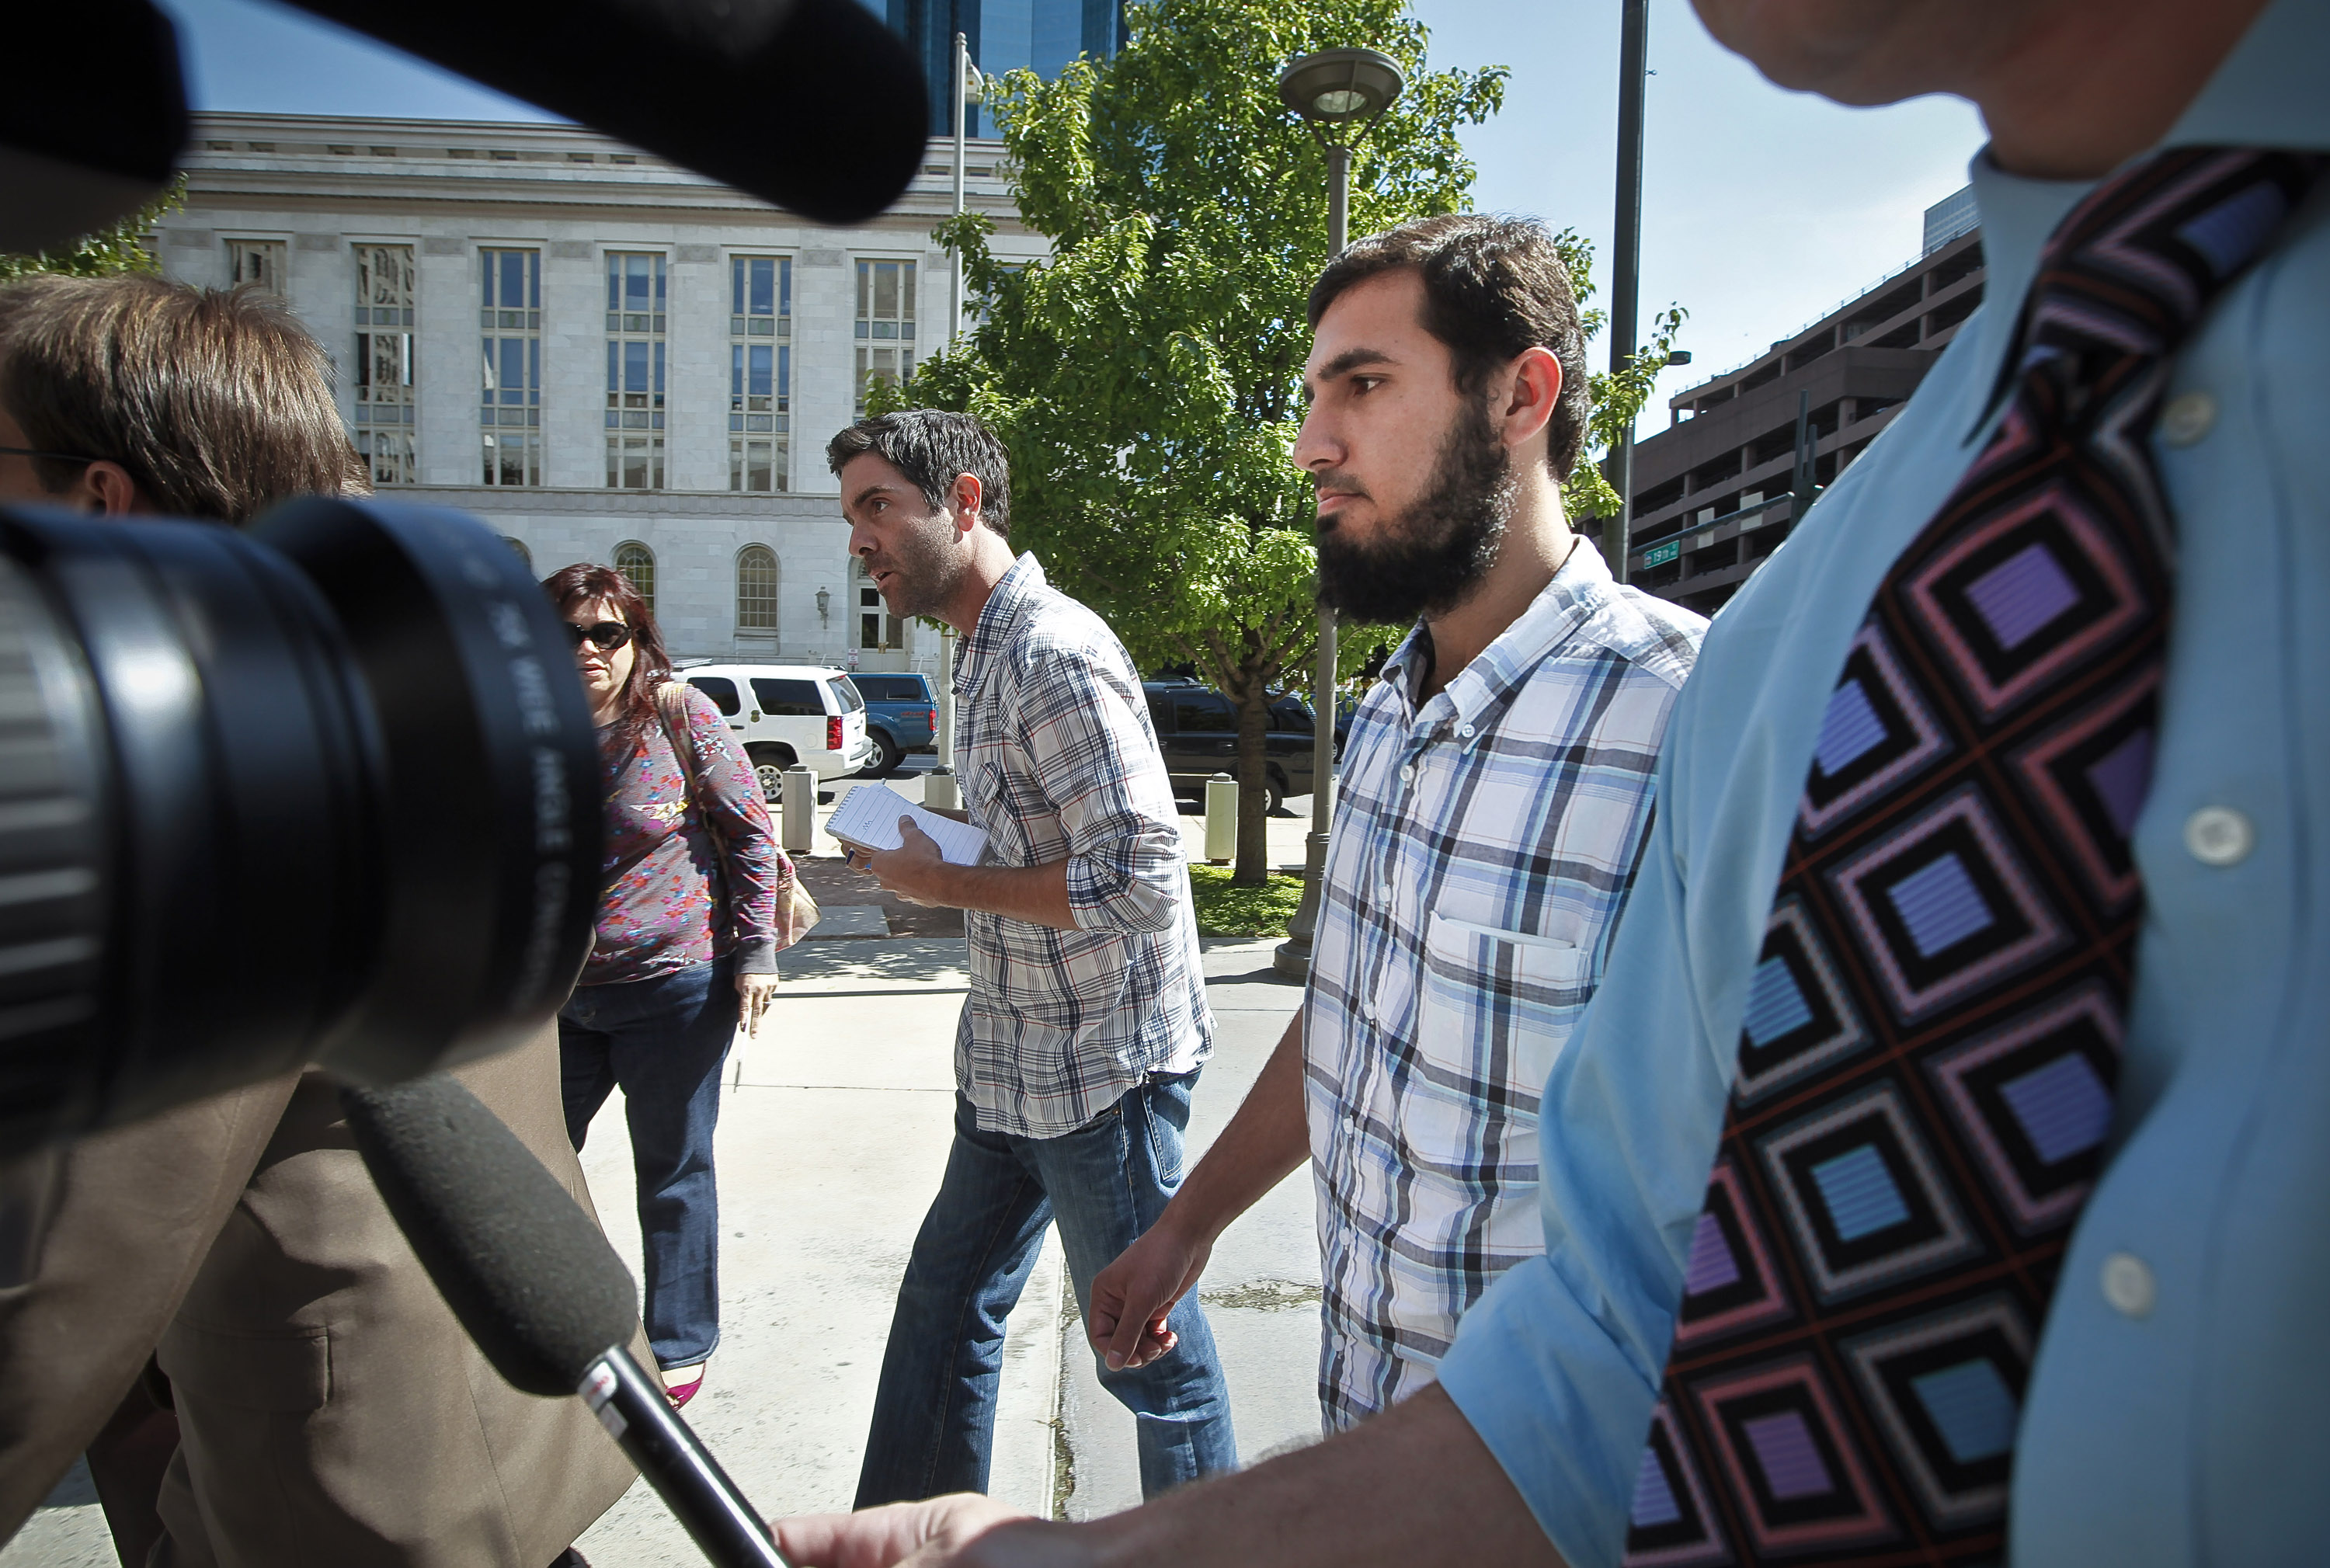 DENVER, COLORADO - SEPTEMEBER 17: Najibullah Zazi (R), 24, arrives at the Byron G. Rogers Federal Building in downtown with his attorney Art Folsom (not pictured) September 17, 2009 in Denver, Colorado. Zazi has been undergoing questioning at the FBI's Denver branch for suspected involvement in a terrorism plot involving peroxide-based explosives. Federal and local authorities searched Zazi's apartment and the home of relatives close by yesterday but have not commented on whether anything was found during the searches. Zazi has repeatedly denied being involved with terrorism or bomb making. Getty Images/ Marc Piscotty